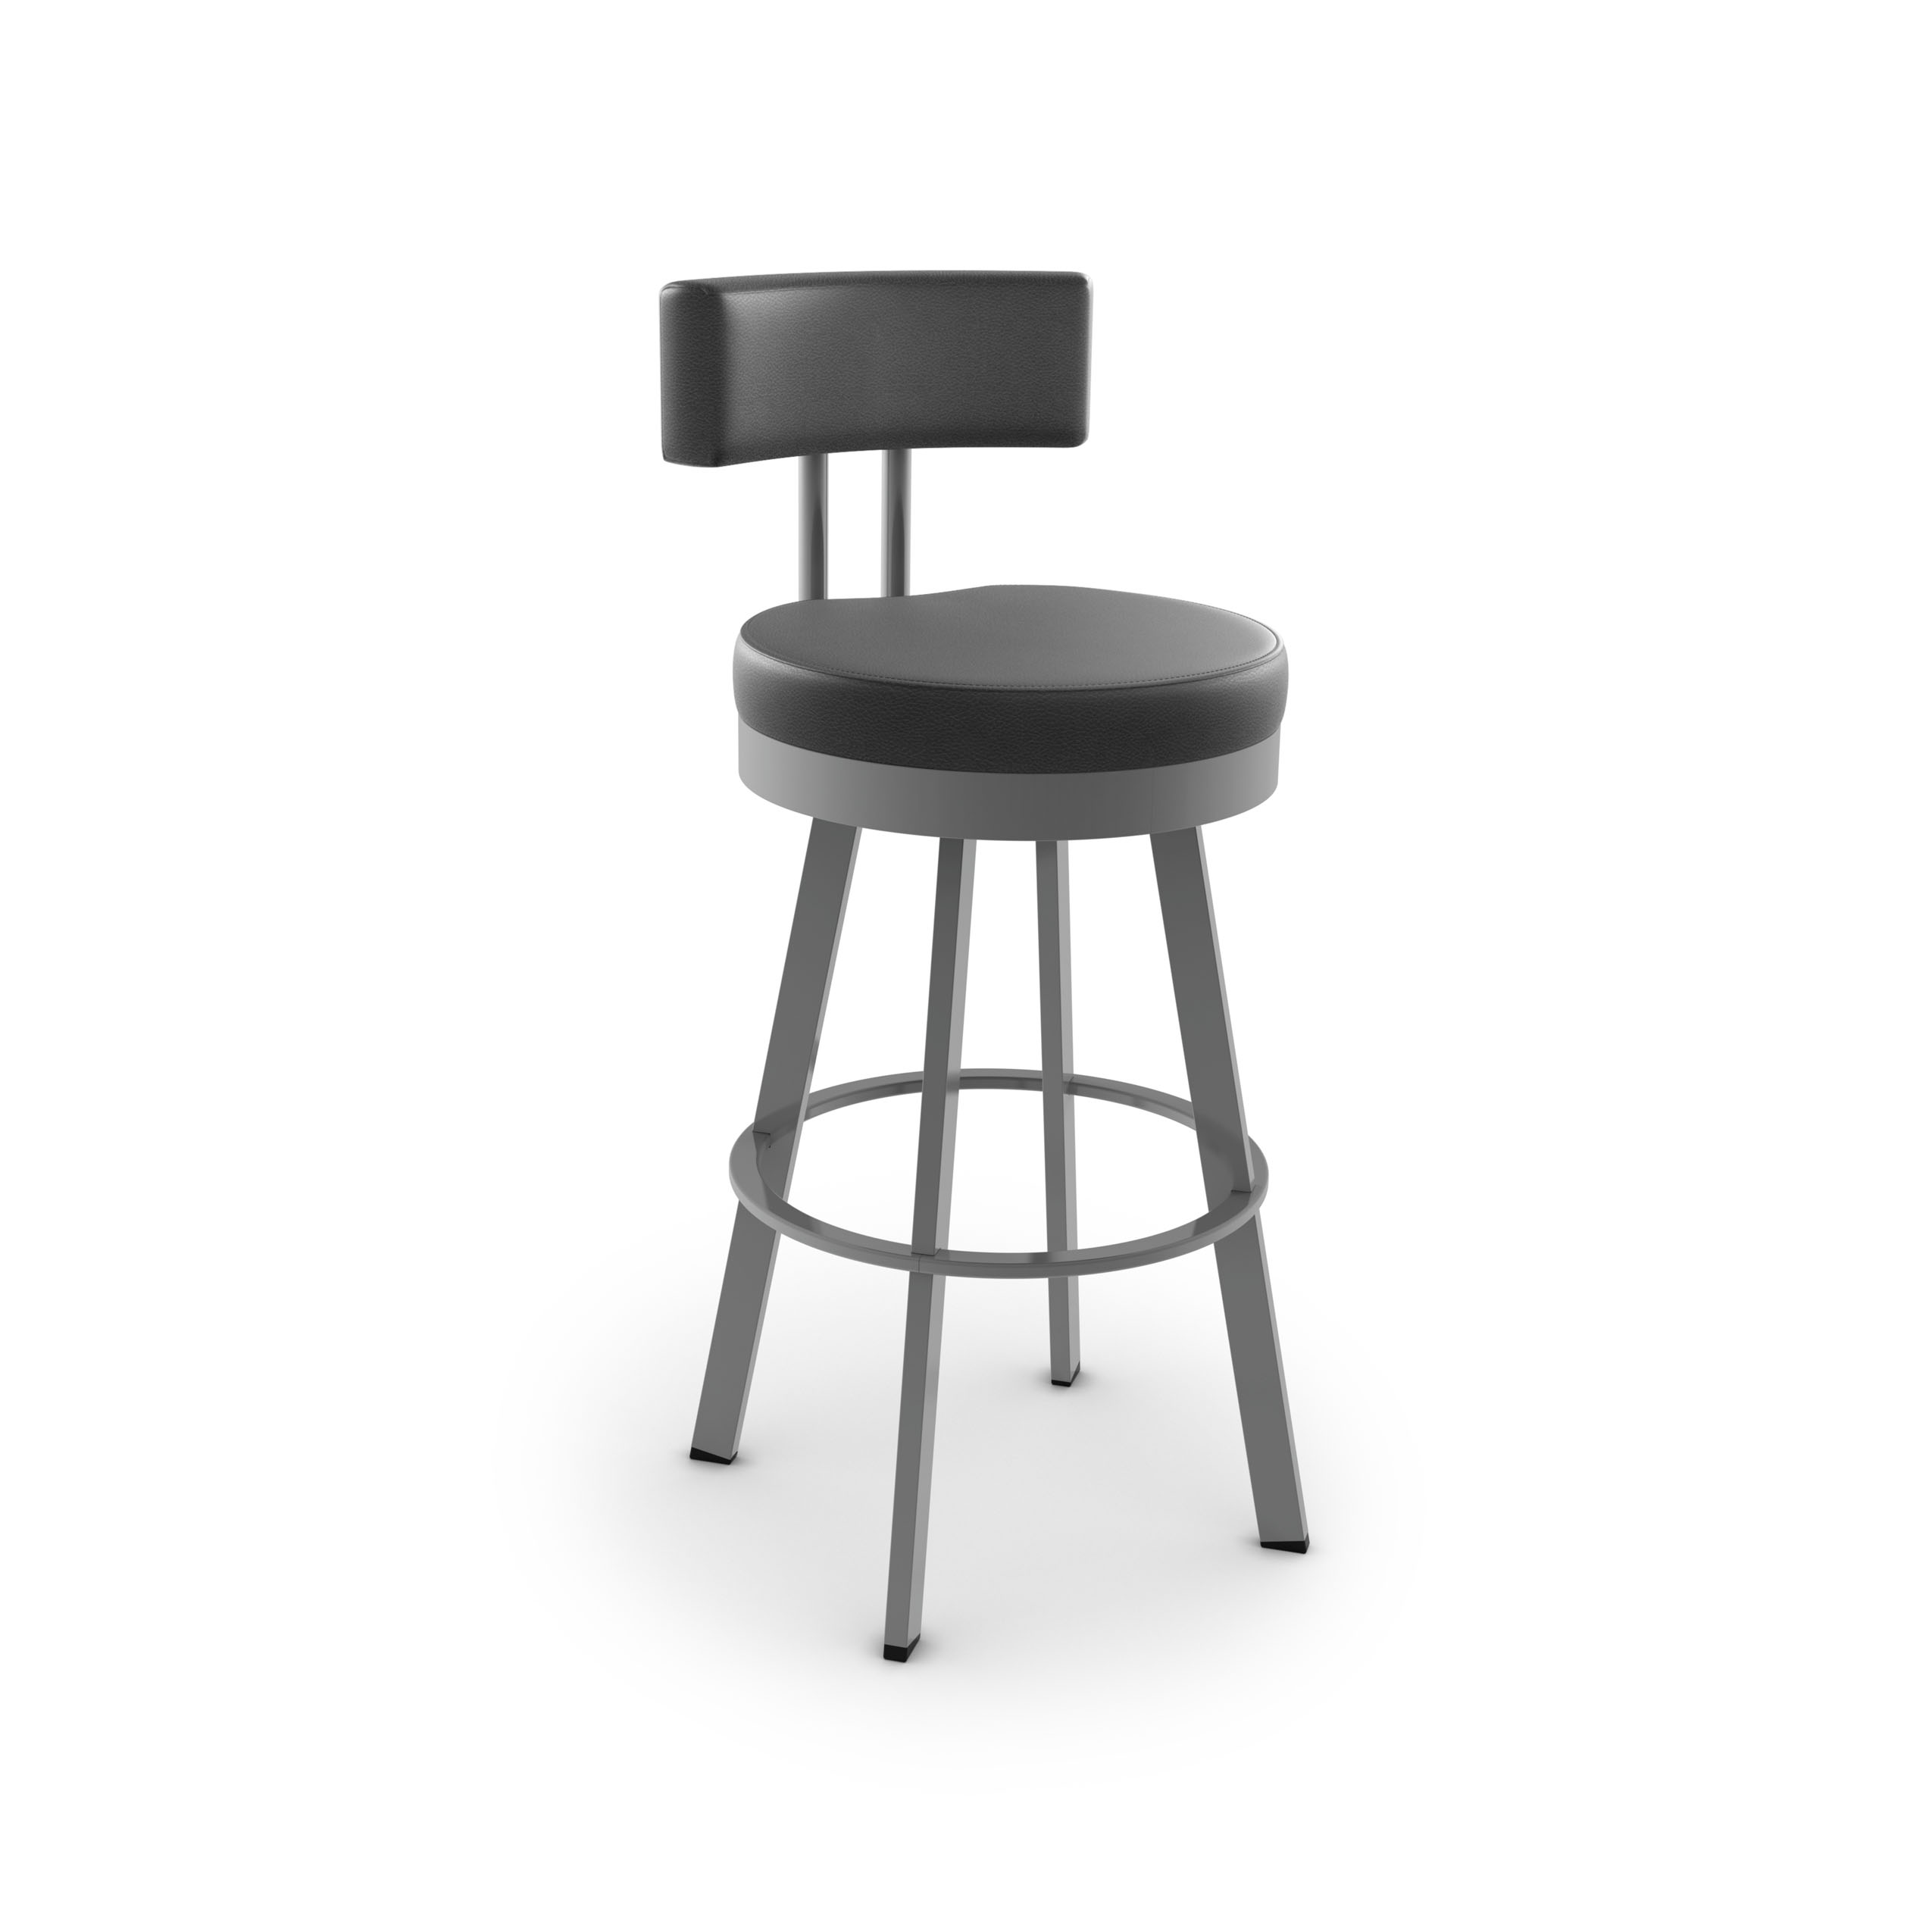 Superb Amisco Counter And Bar Height Tables And Stools Andrewgaddart Wooden Chair Designs For Living Room Andrewgaddartcom